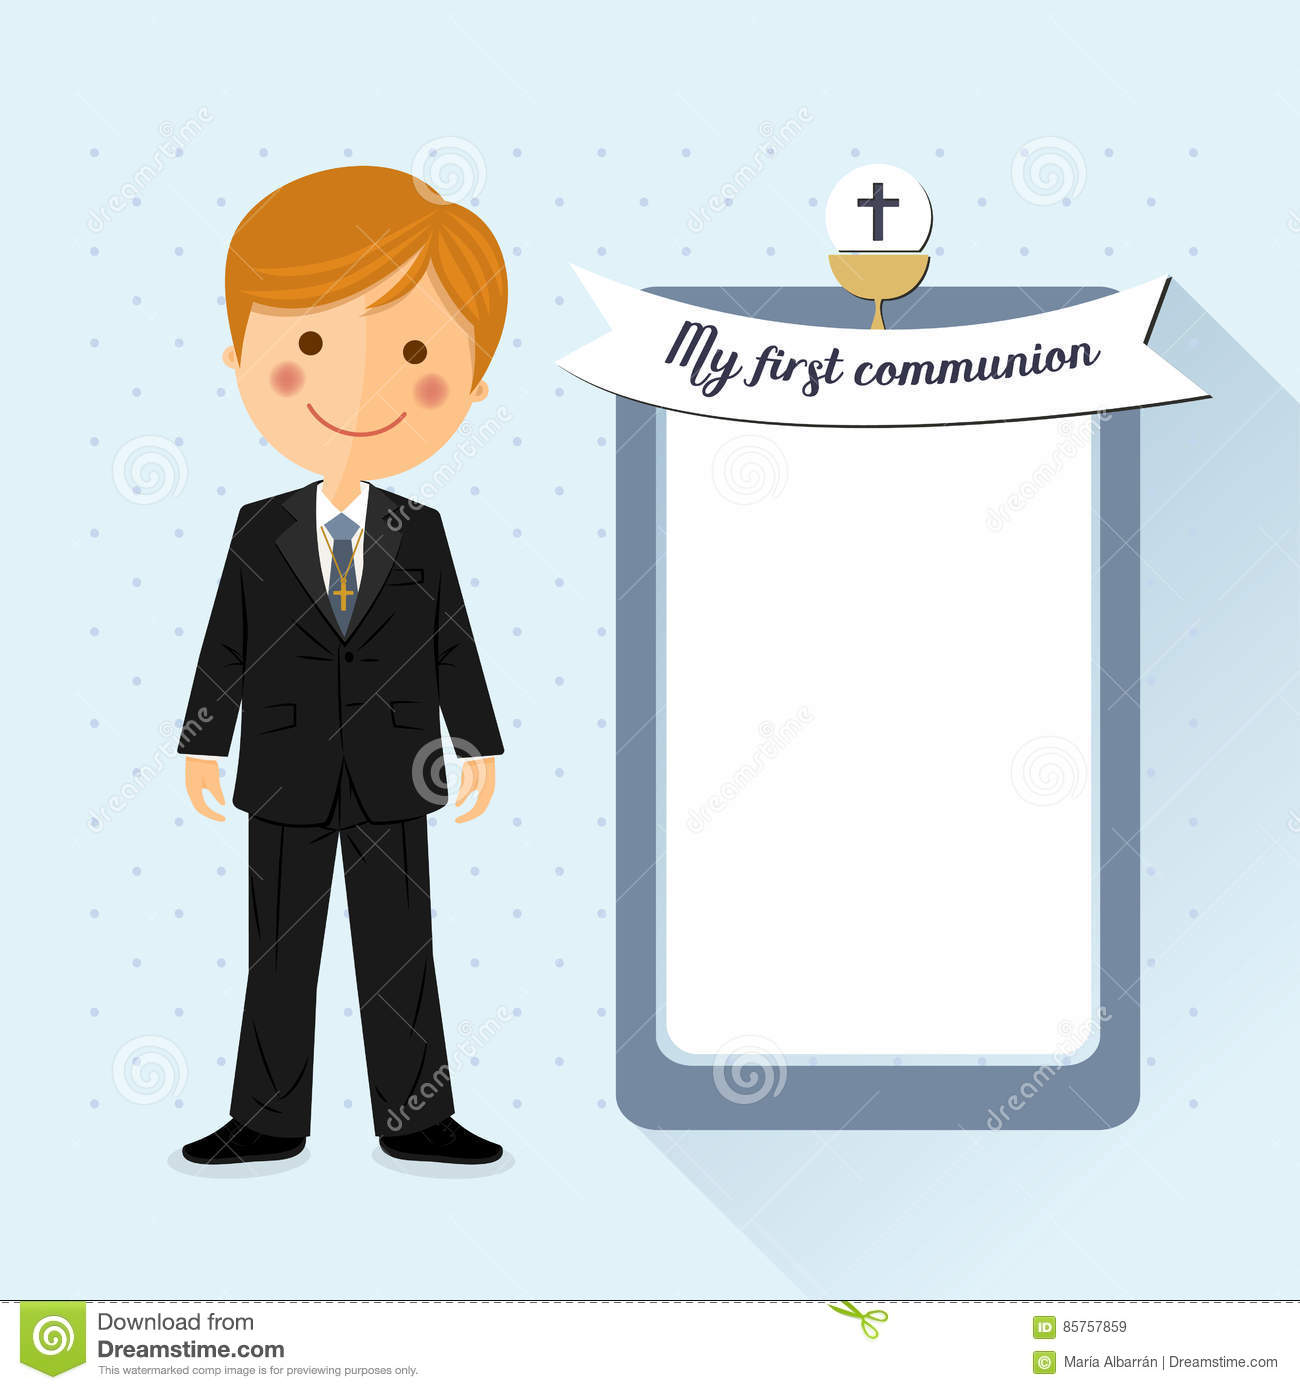 Foreground child costume in her first communion dress invitation with message